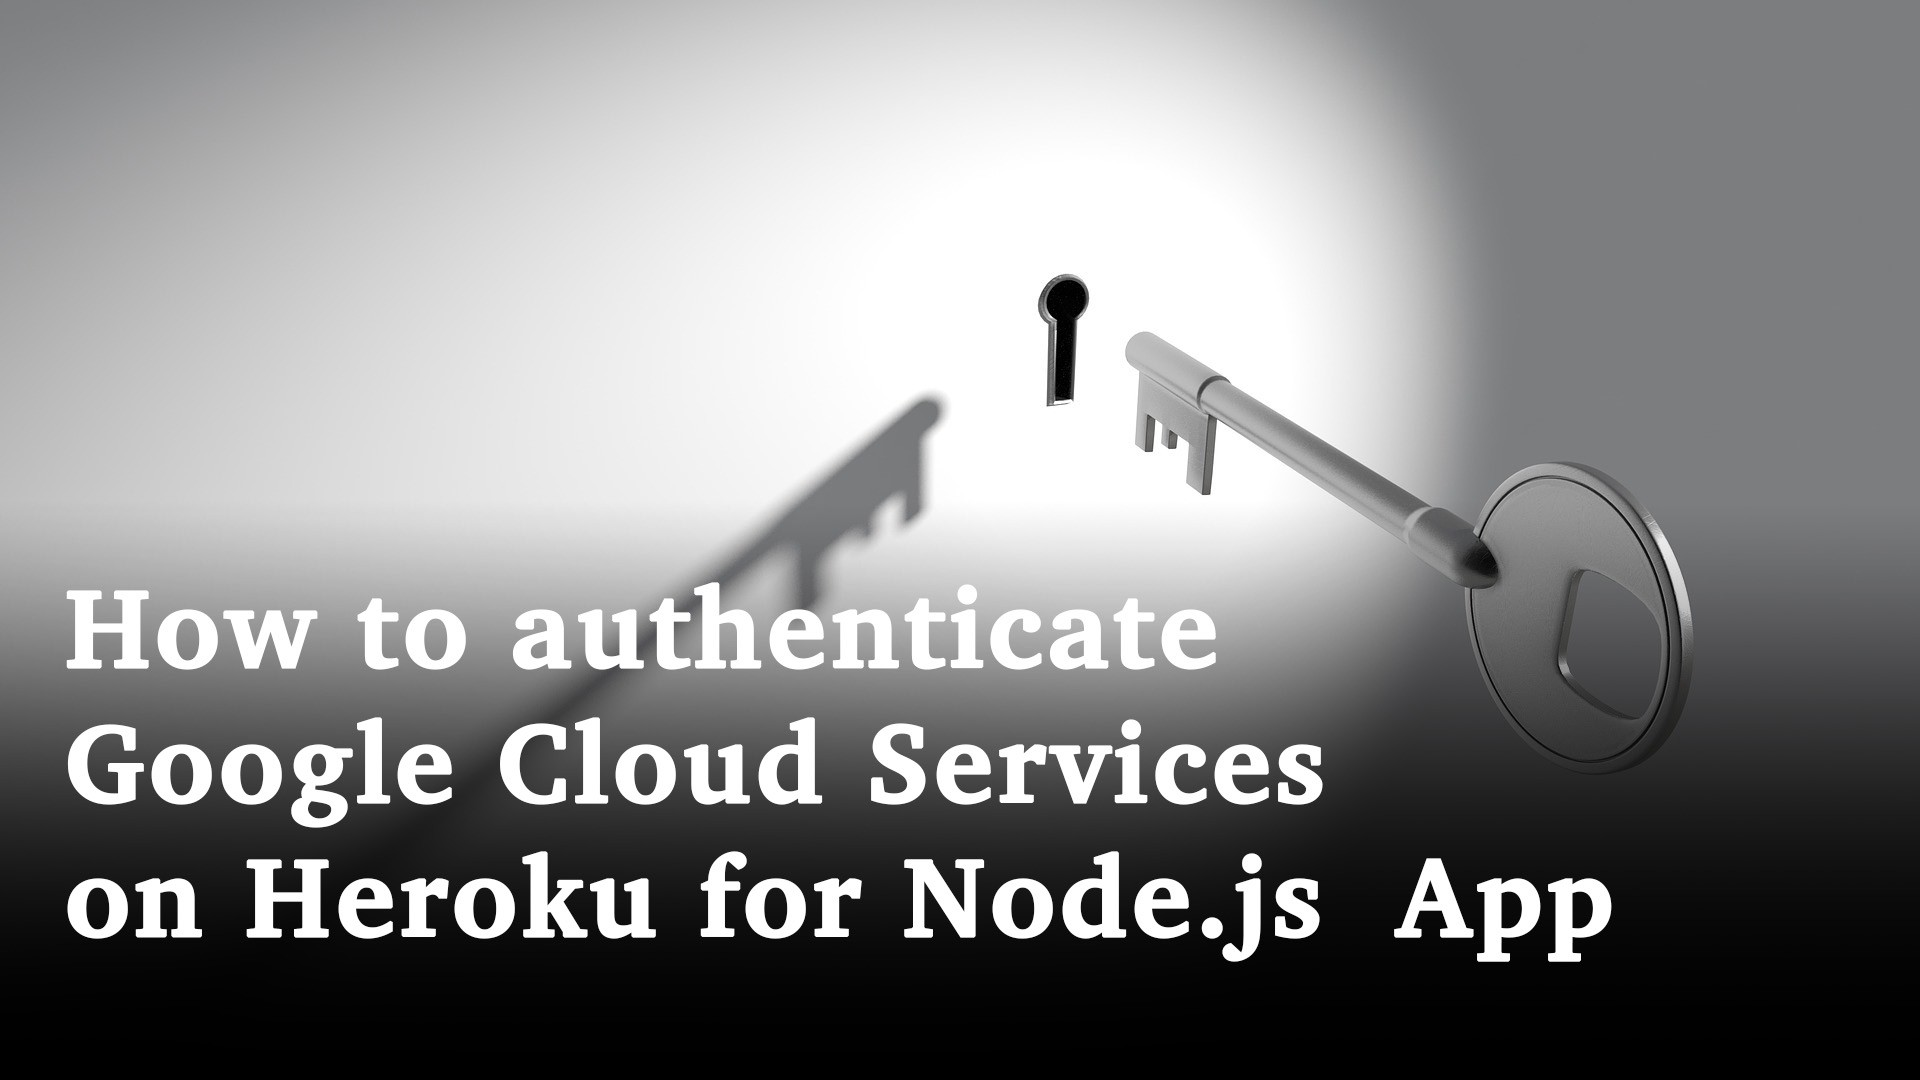 How to authenticate Google Cloud Services on Heroku for Node